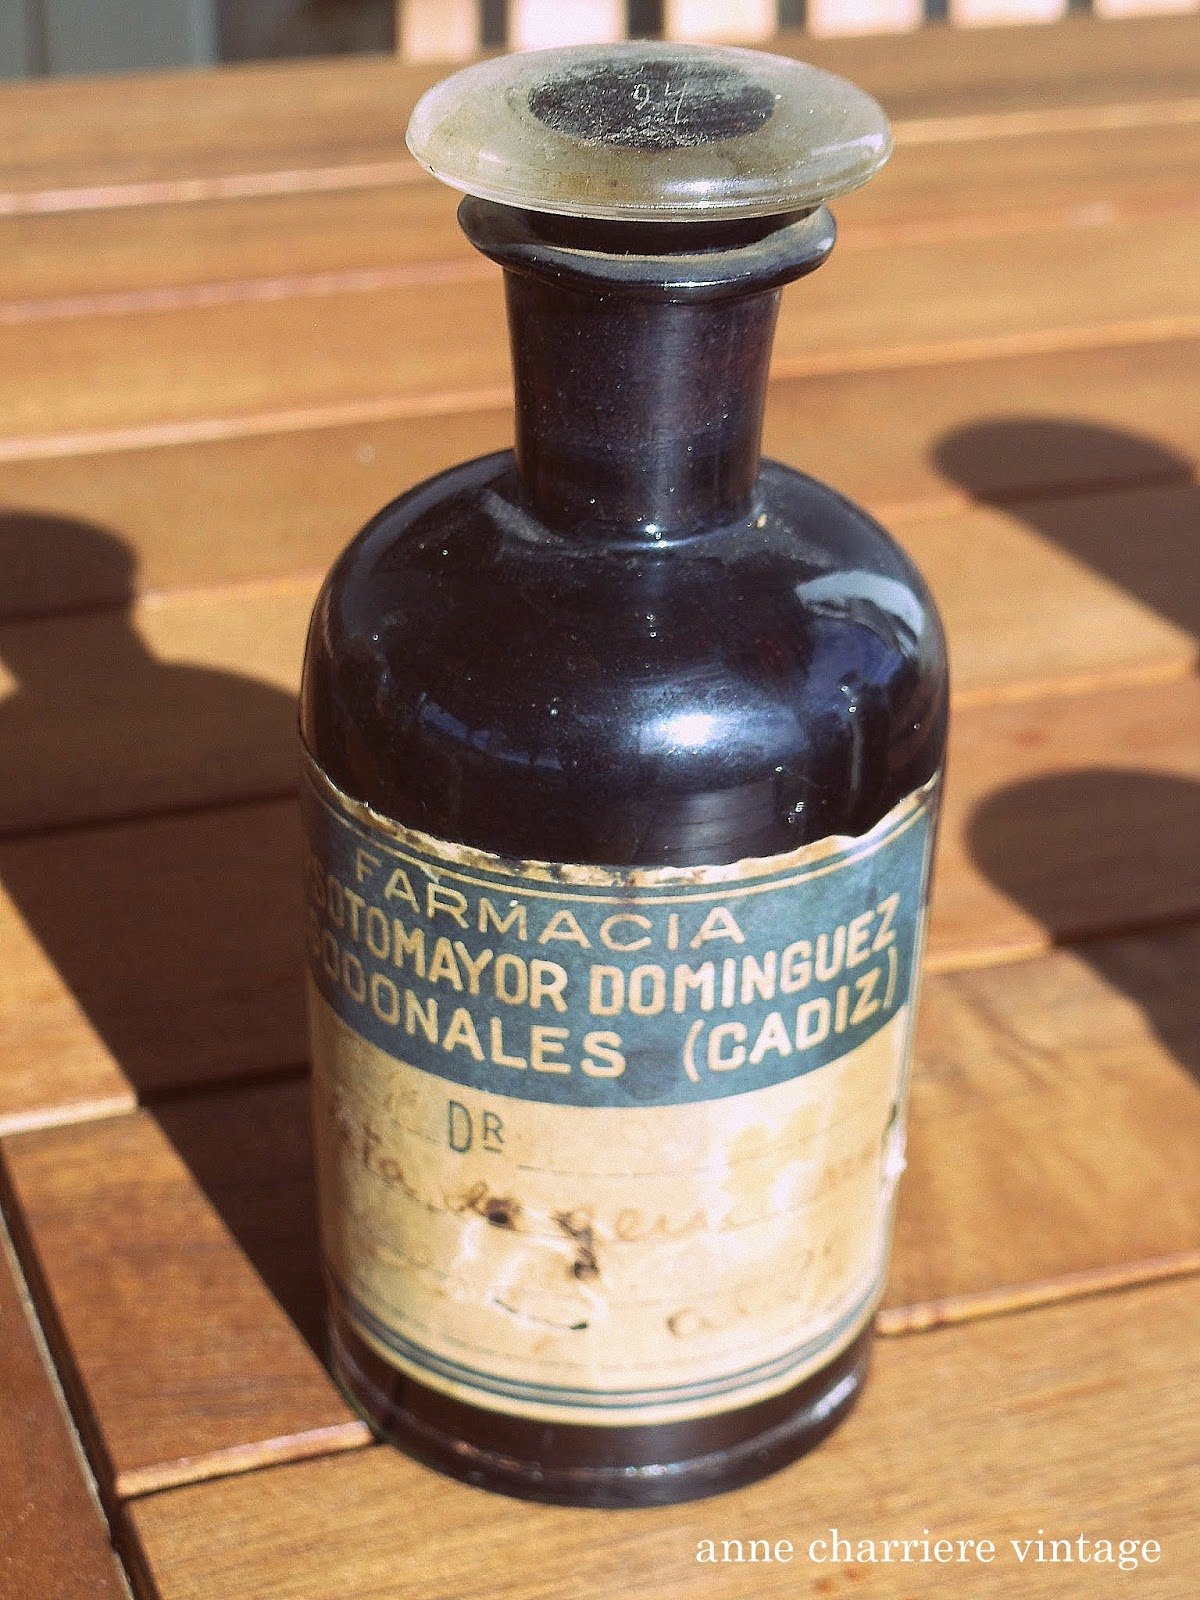 www.annecharriere.com, anne charriere vintage, antiguos frascos farmacia,